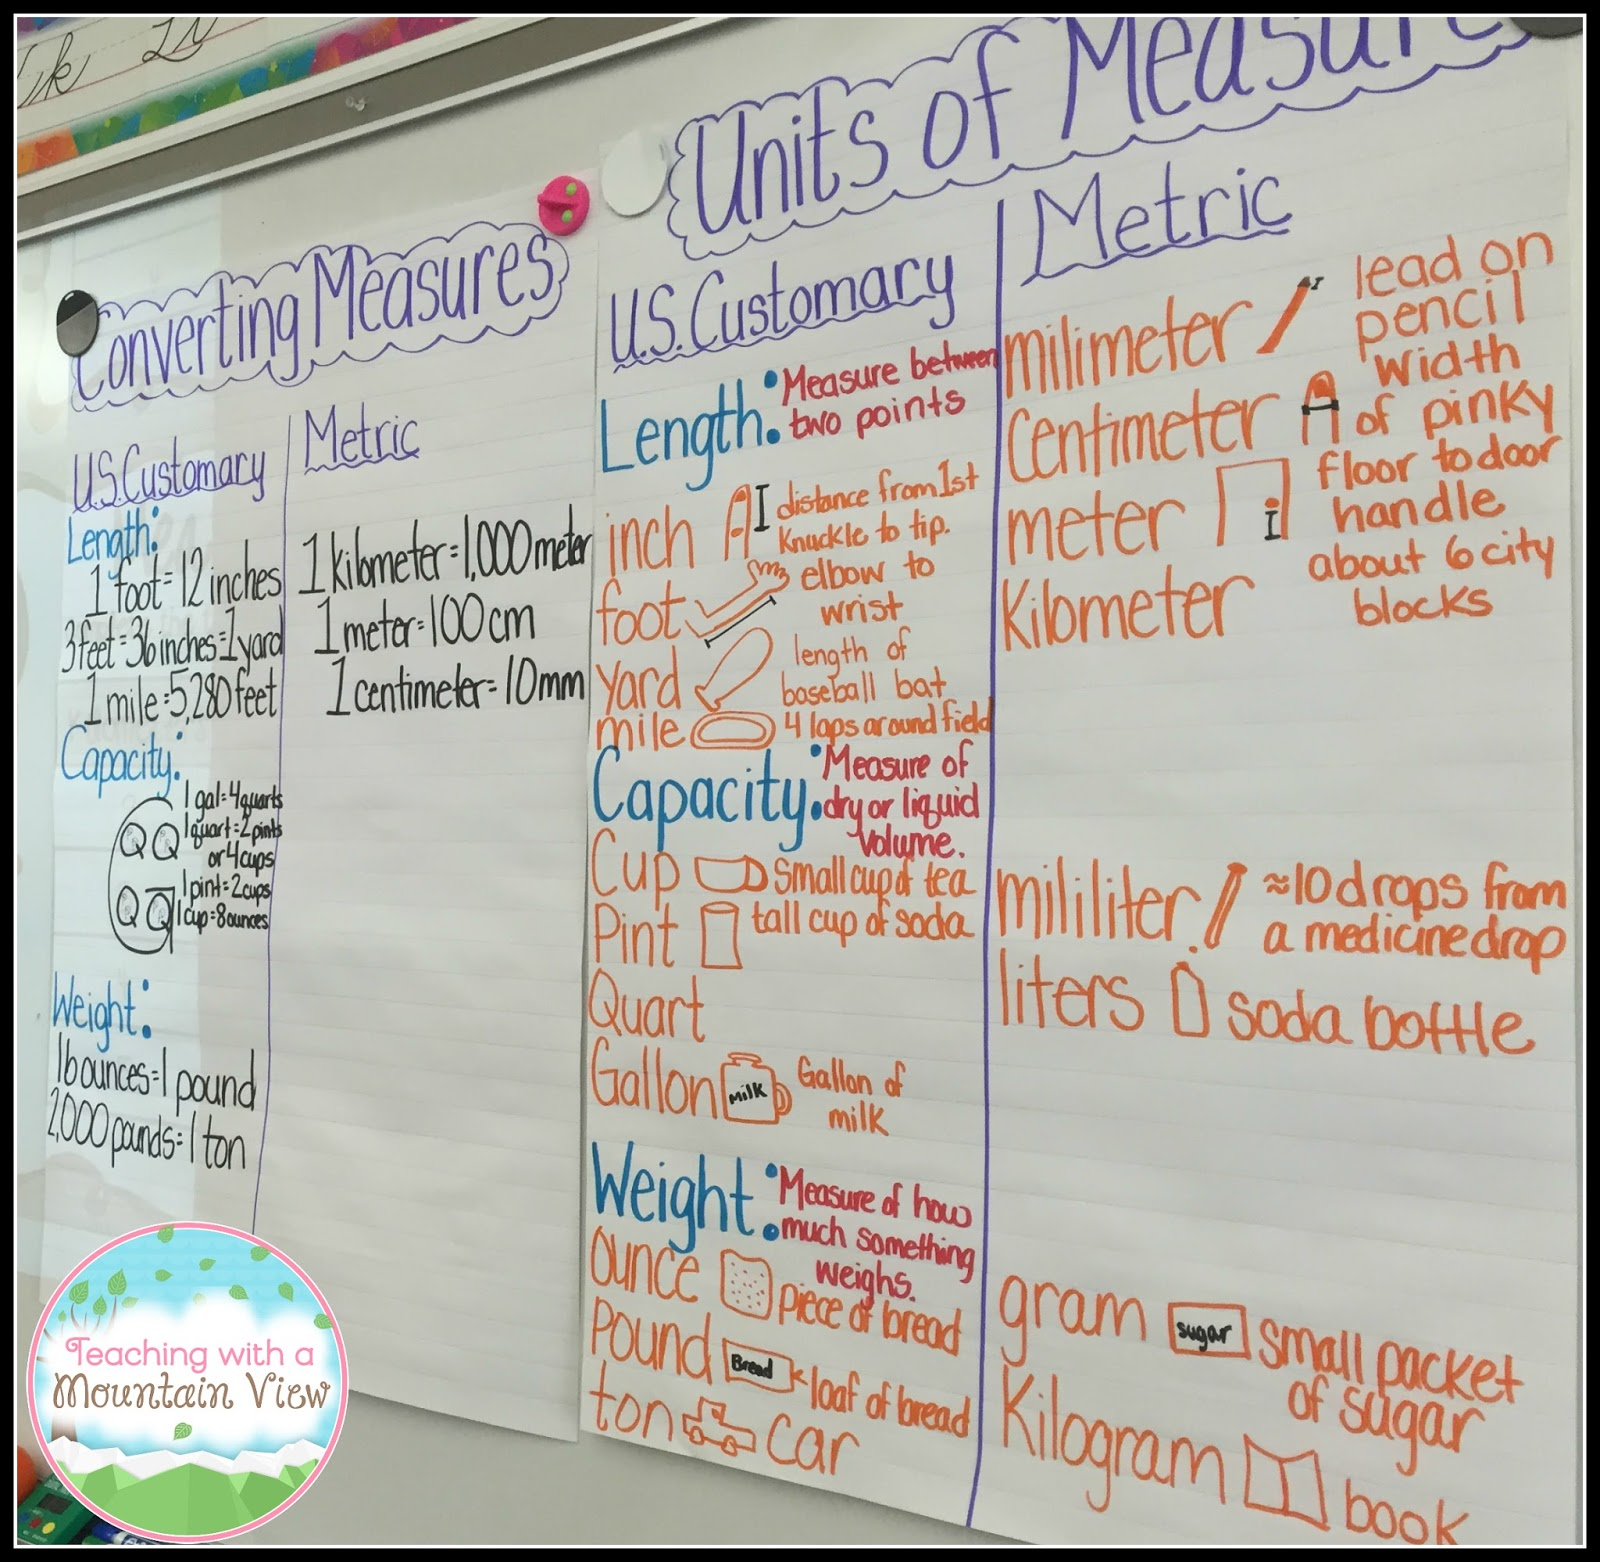 teaching with a mountain view: measurement and geometry unit